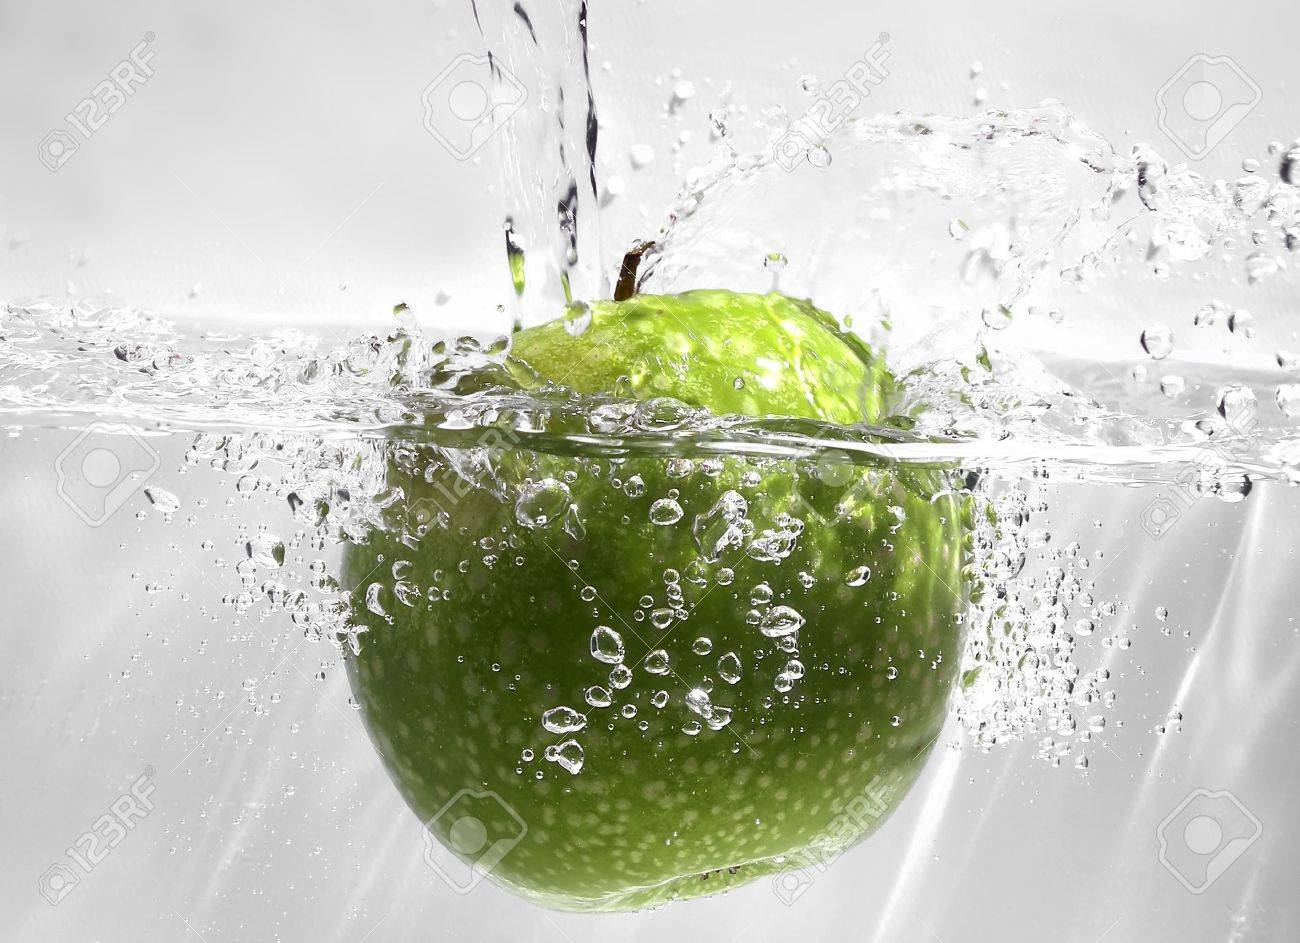 Fruits in water - 427027